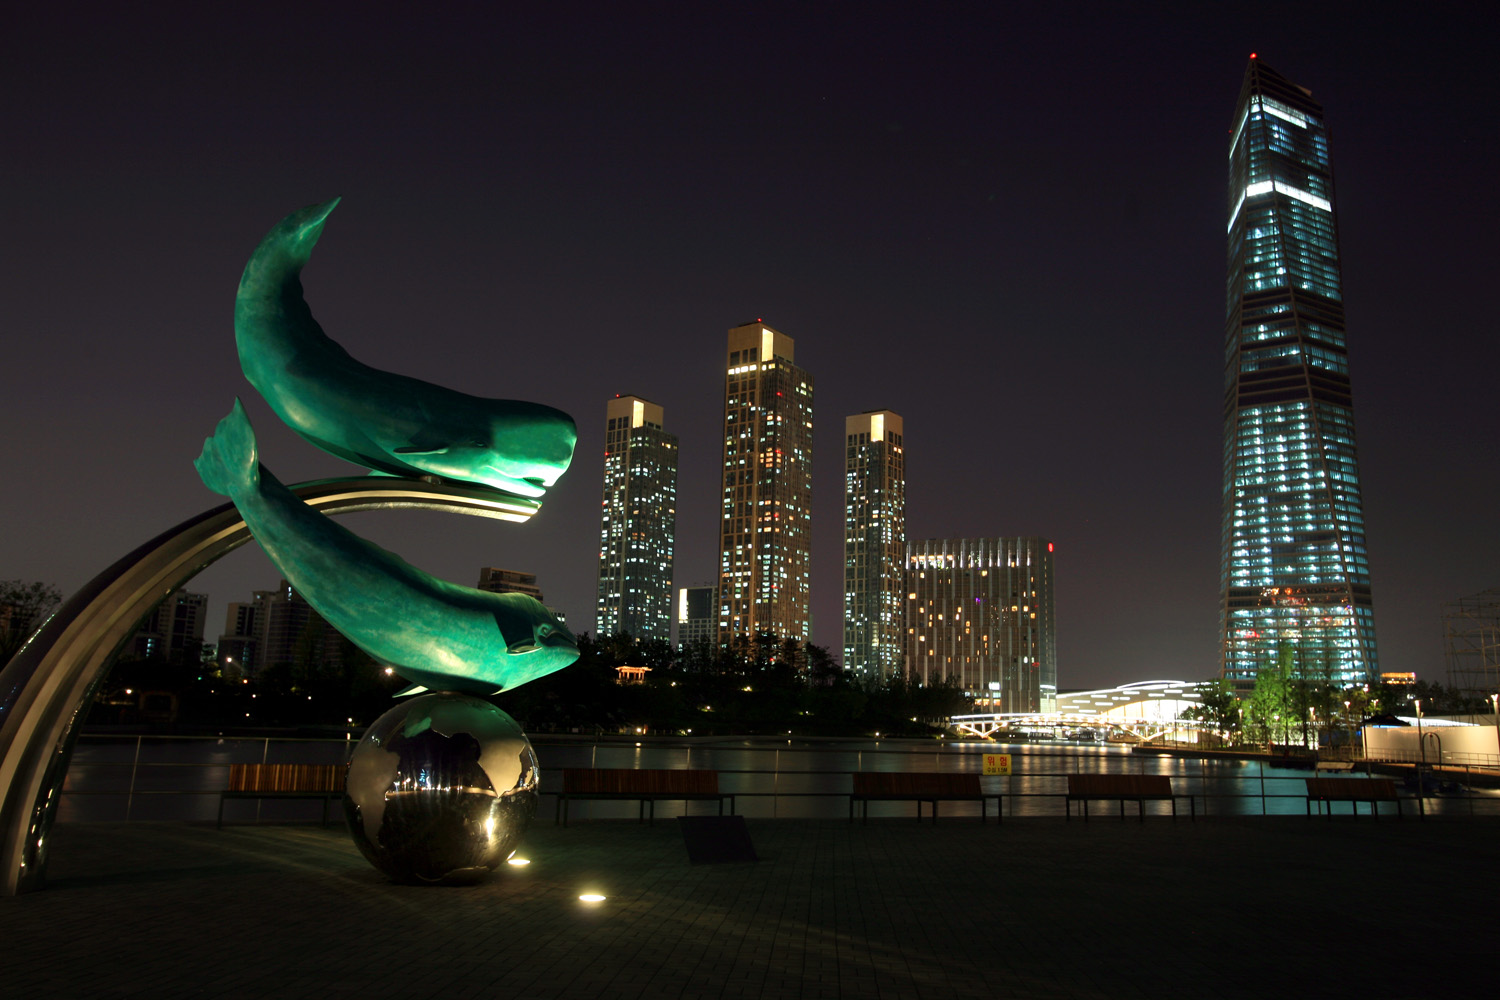 A night view from the central park of Songdo International Business District in Incheon, South Korea.